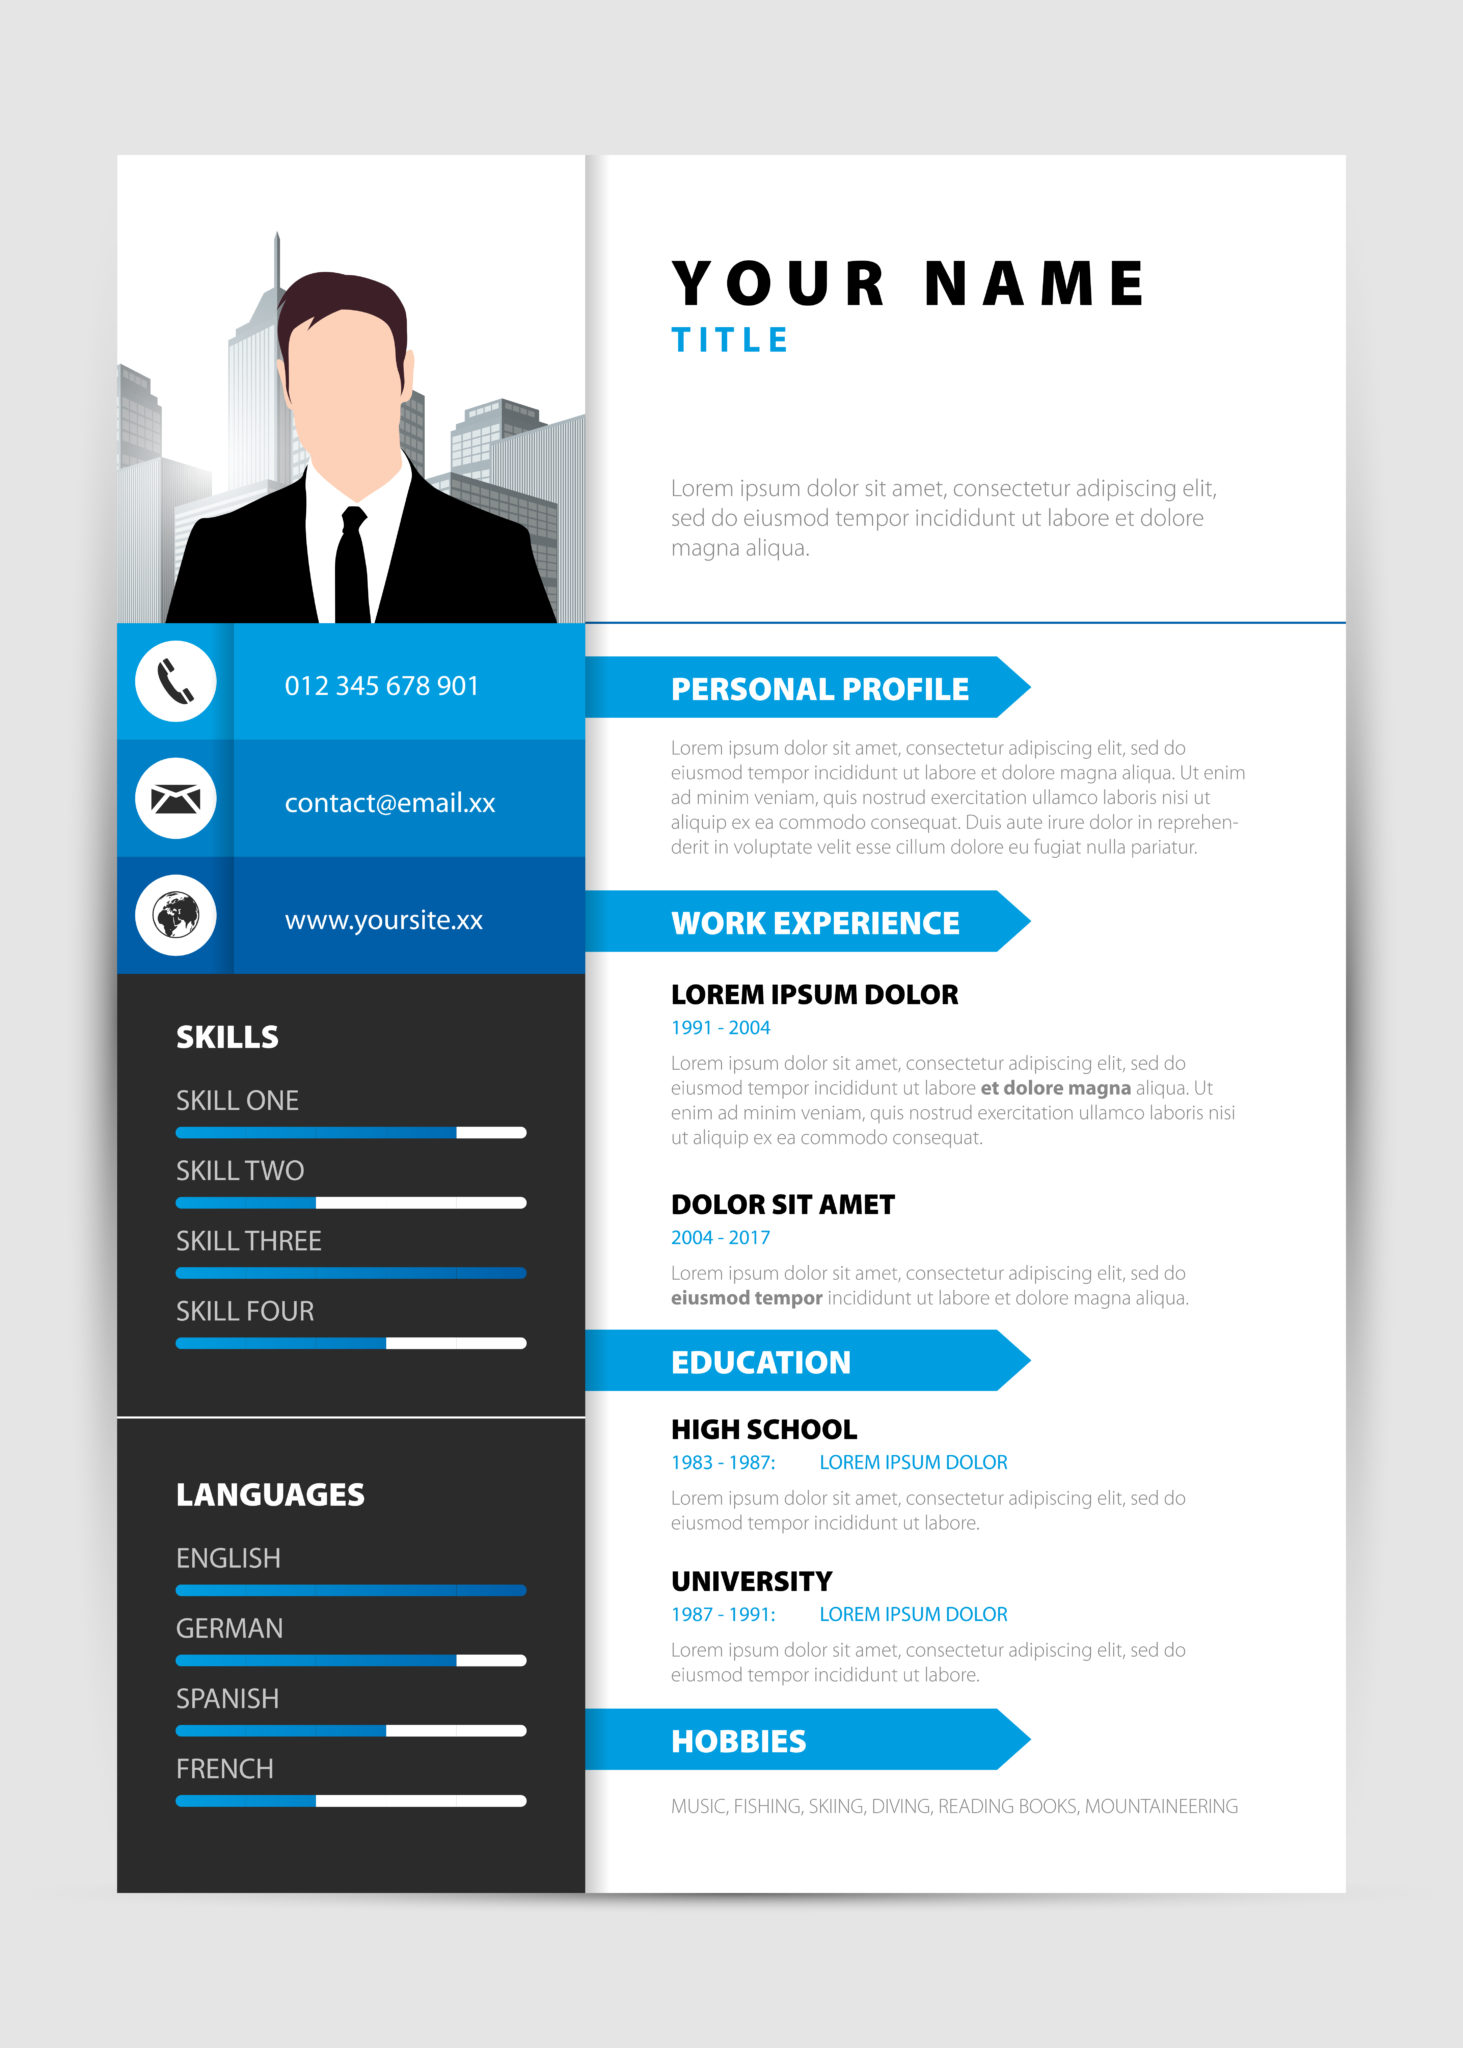 aws resume to make your look attractive edureka for year experience big data engineer Resume Aws Resume For 1 Year Experience